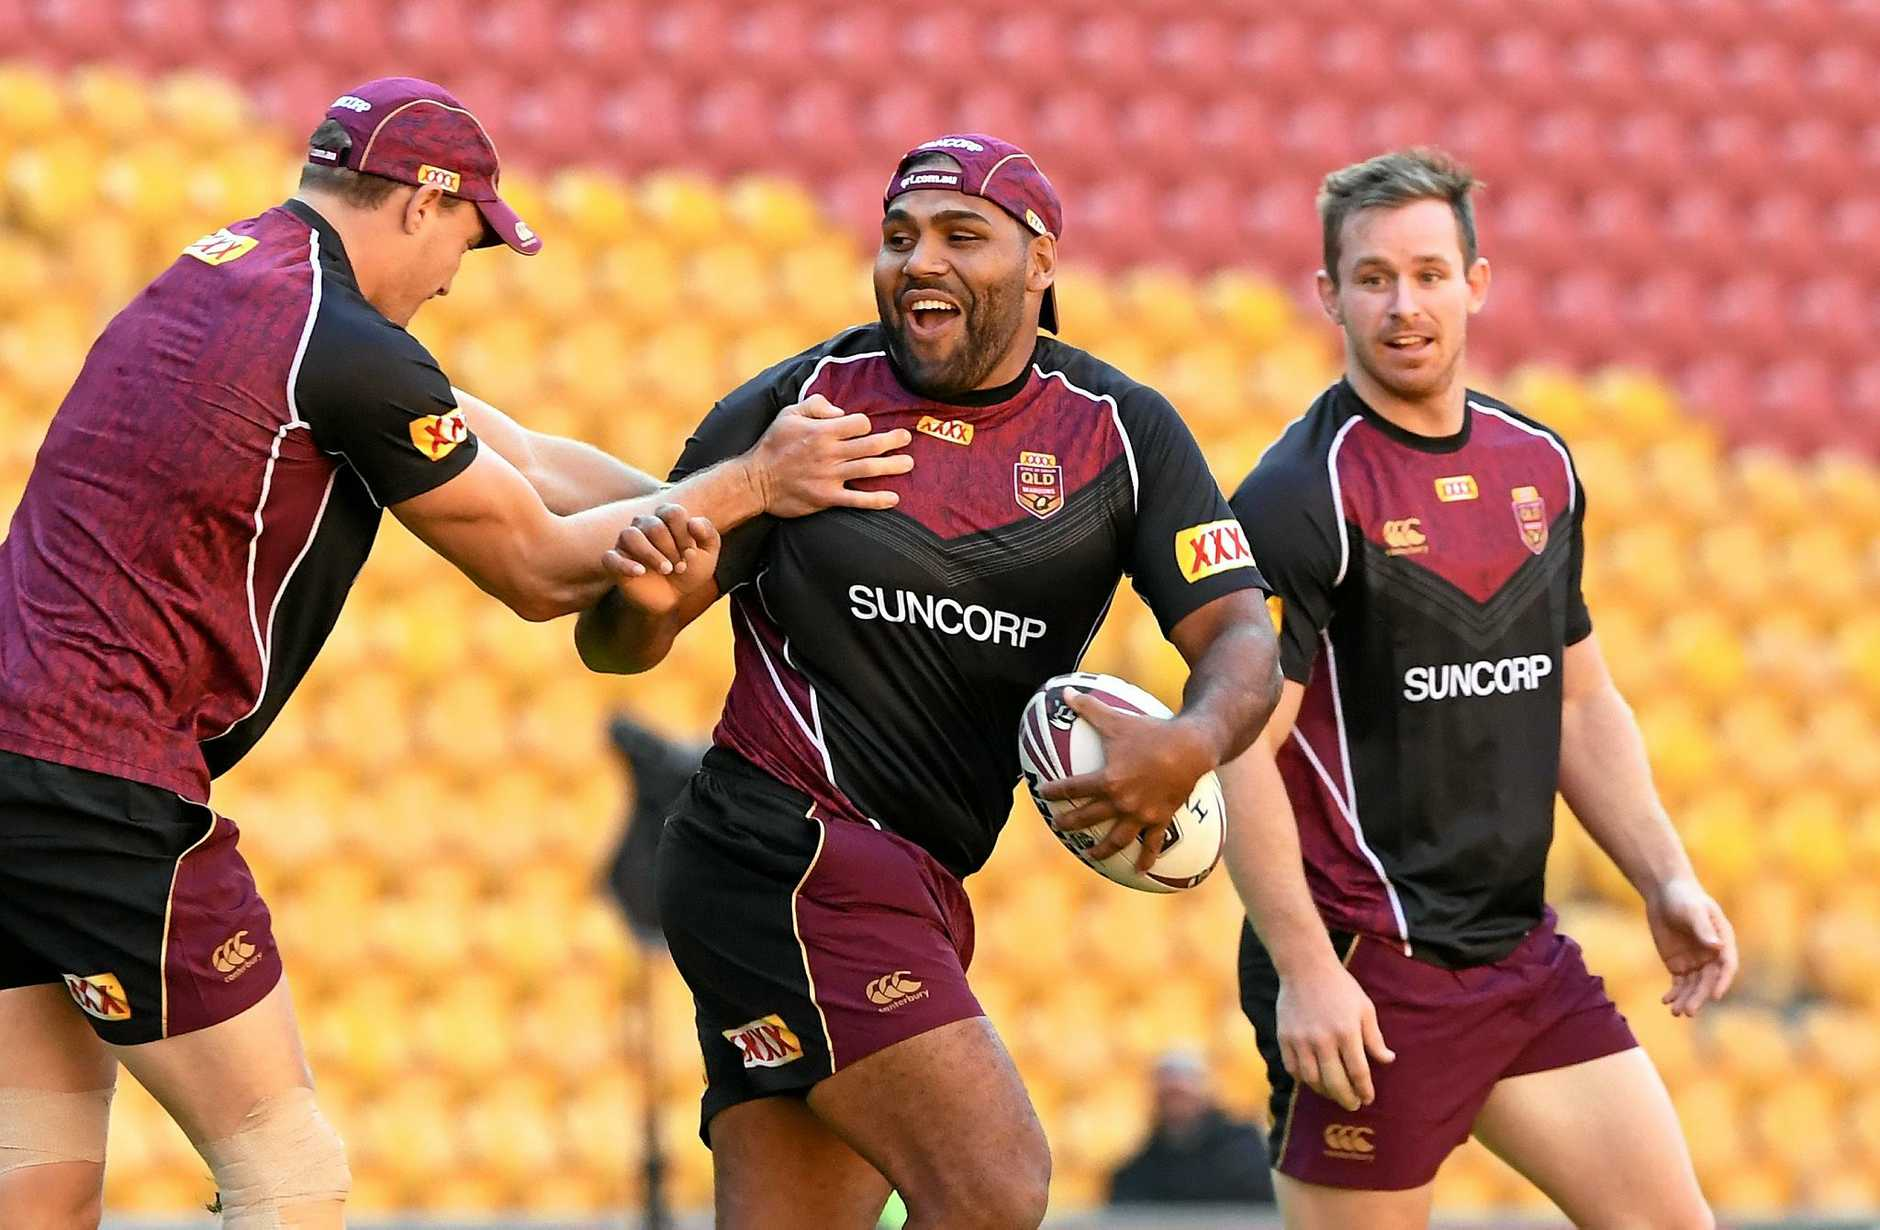 Sam Thaiday (centre) during the Queensland State of Origin team training session in Brisbane, Tuesday, May 23, 2017. First match of the State of Origin takes place on Wednesday, 31 May. (AAP Image/Dave Hunt) NO ARCHIVING